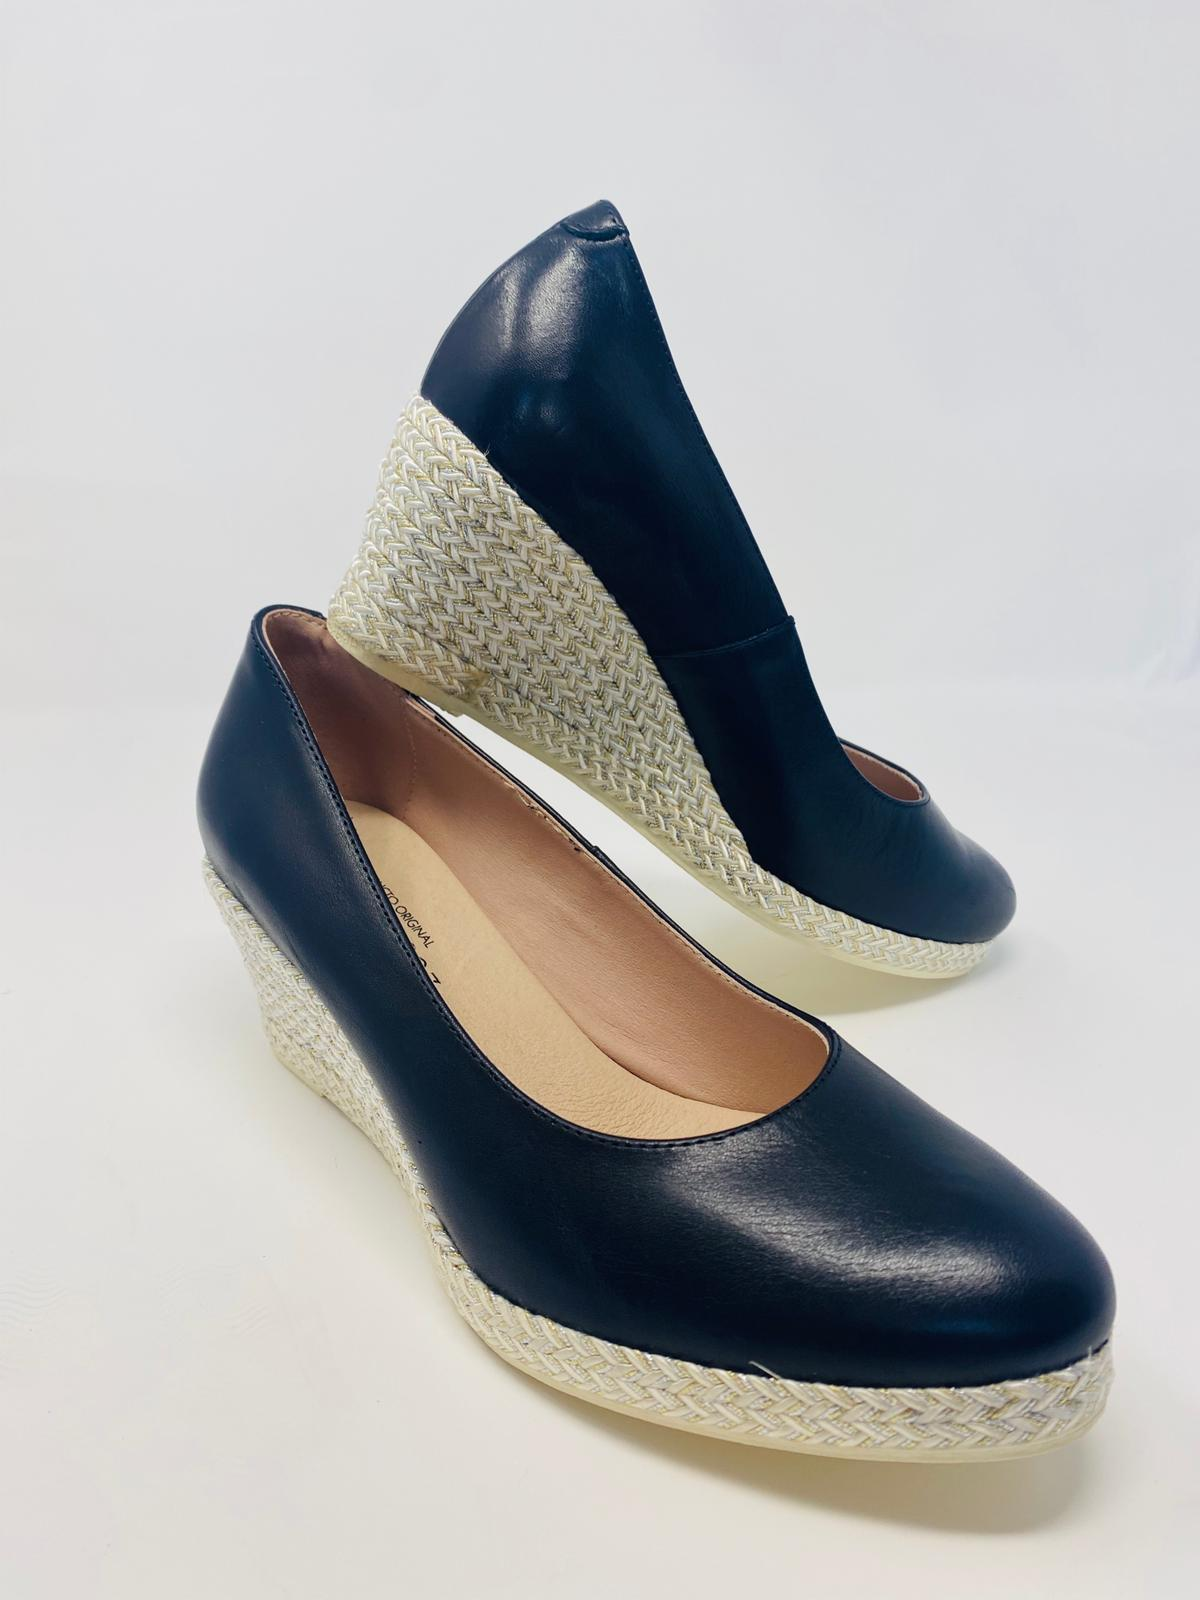 Jose Saenz Black Wedge Shoe